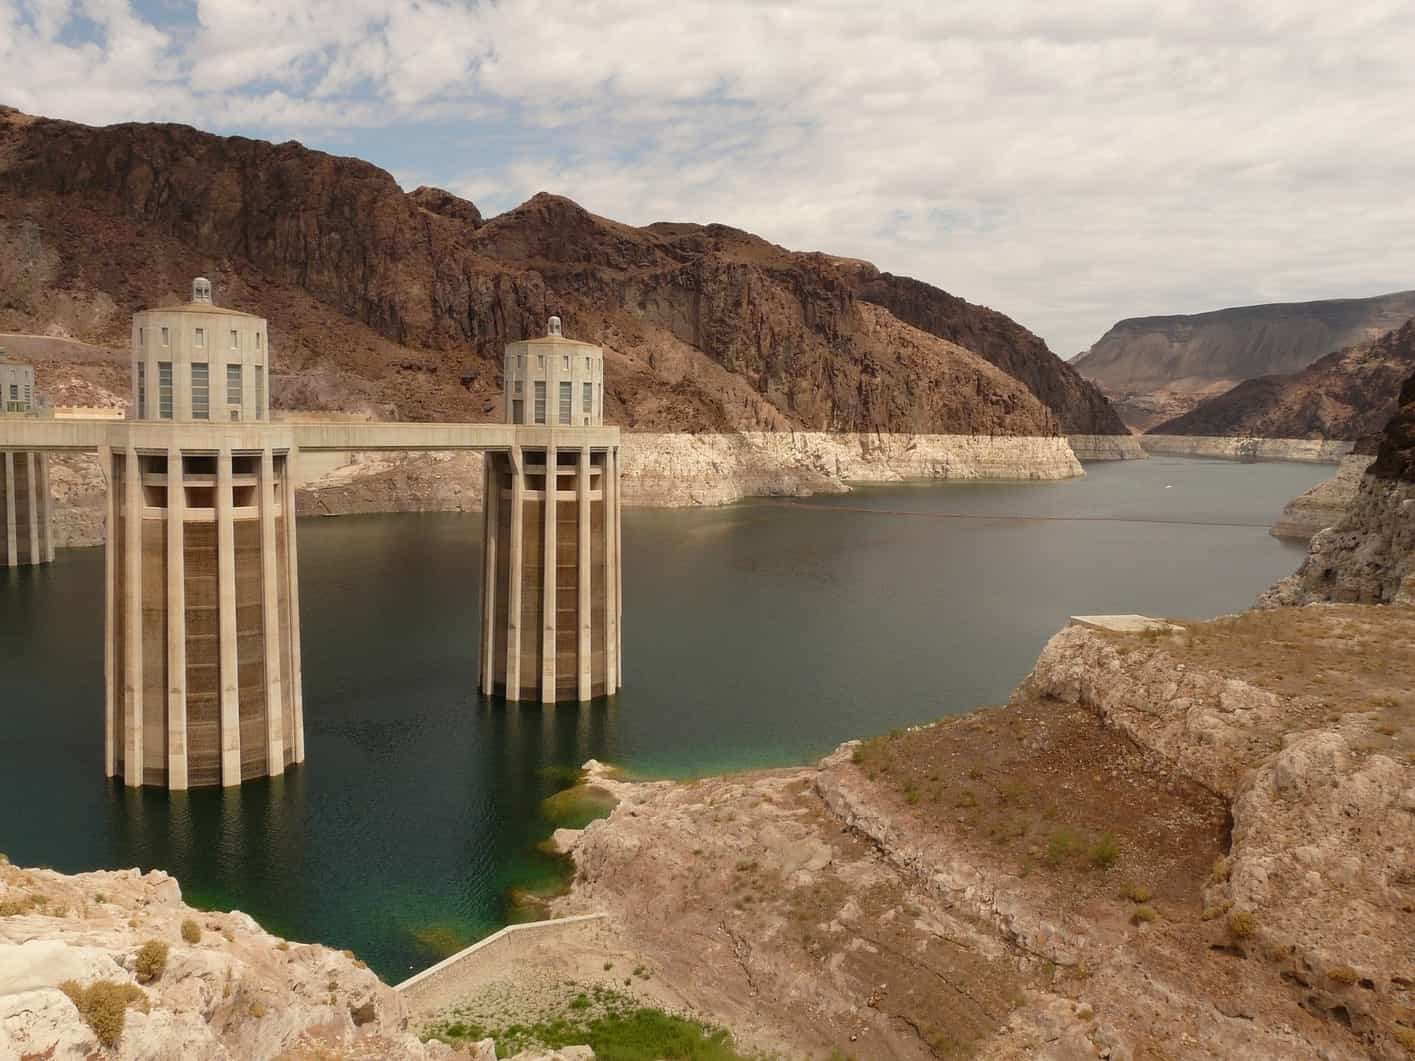 Hoover Dam Lookout – Kingman Wash, visit to the Hoover Dam